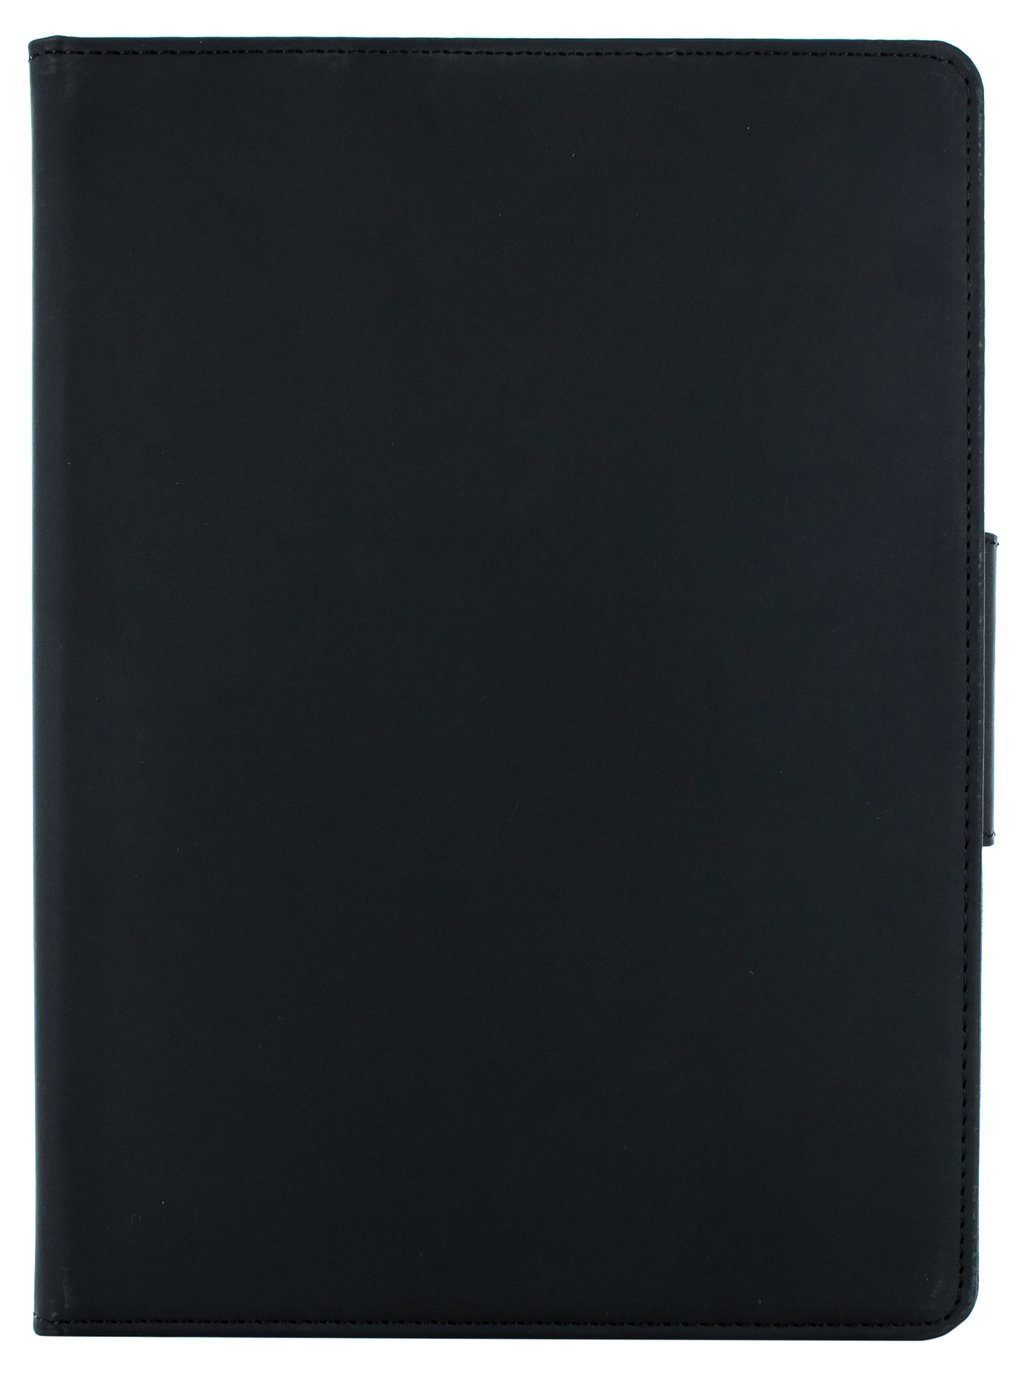 Proporta iPad 10.2 Inch 2020 Folio Case - Black